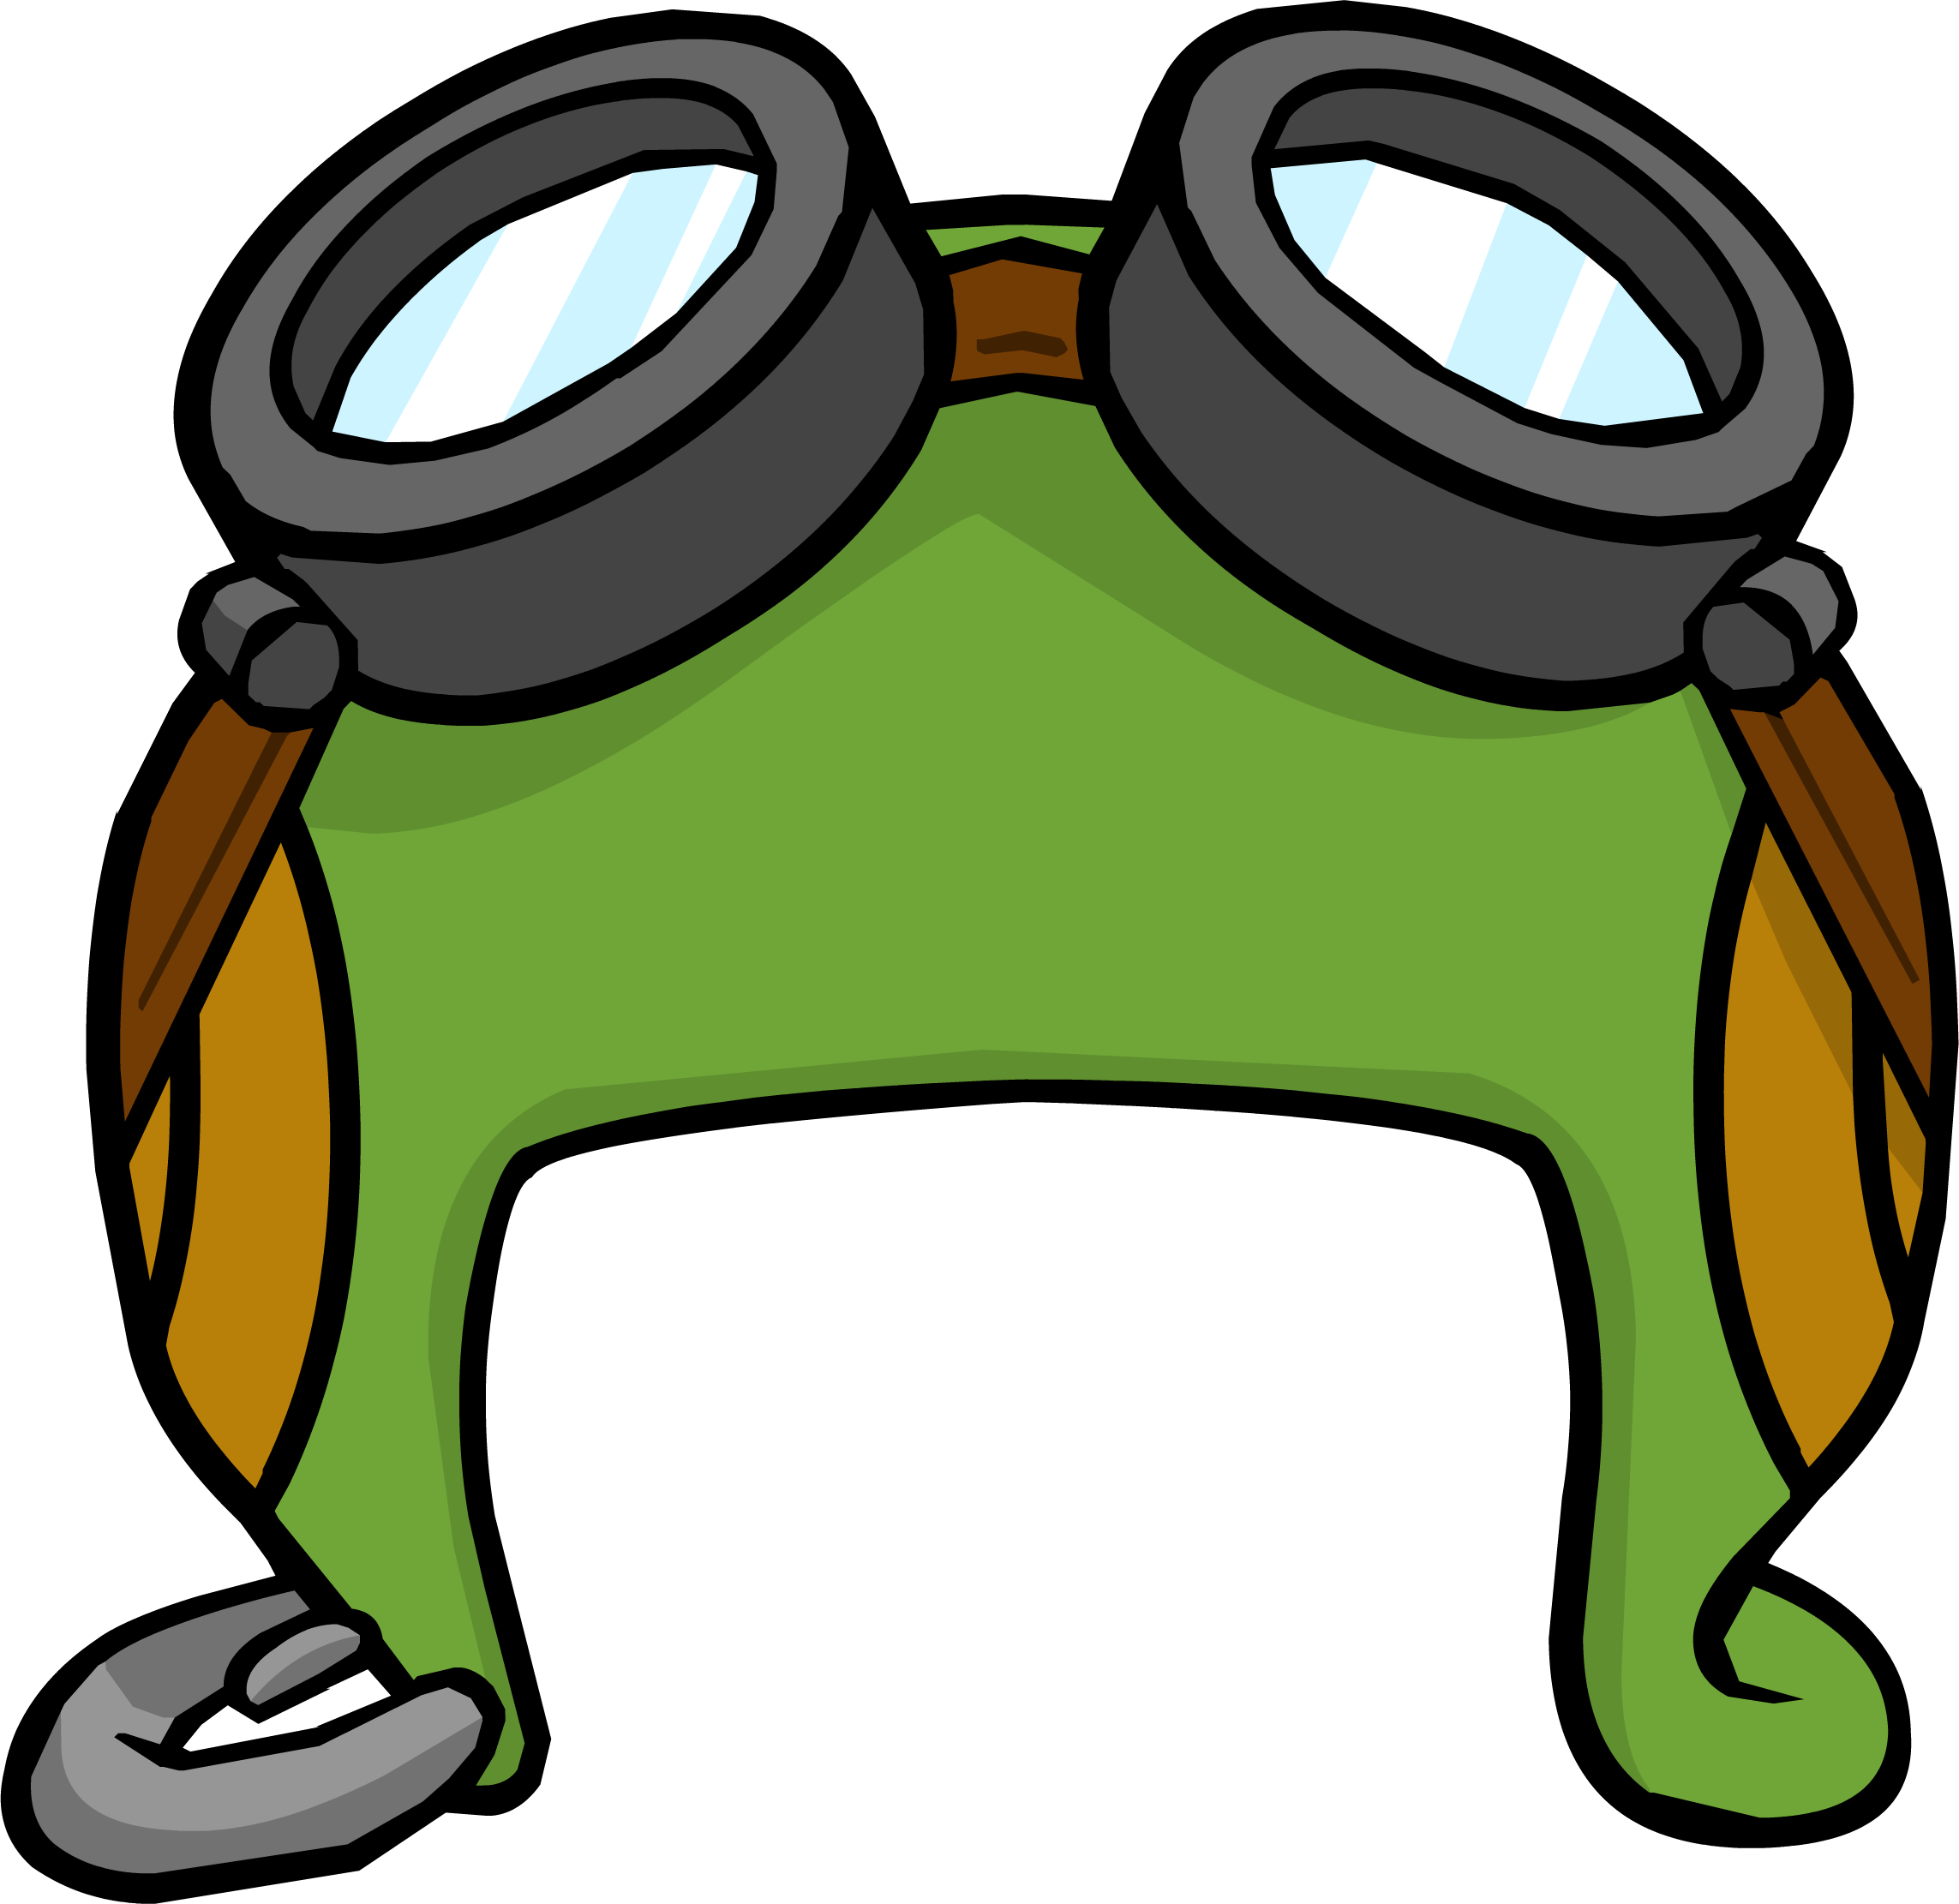 Goggles clipart airplane. Aviator hat club penguin